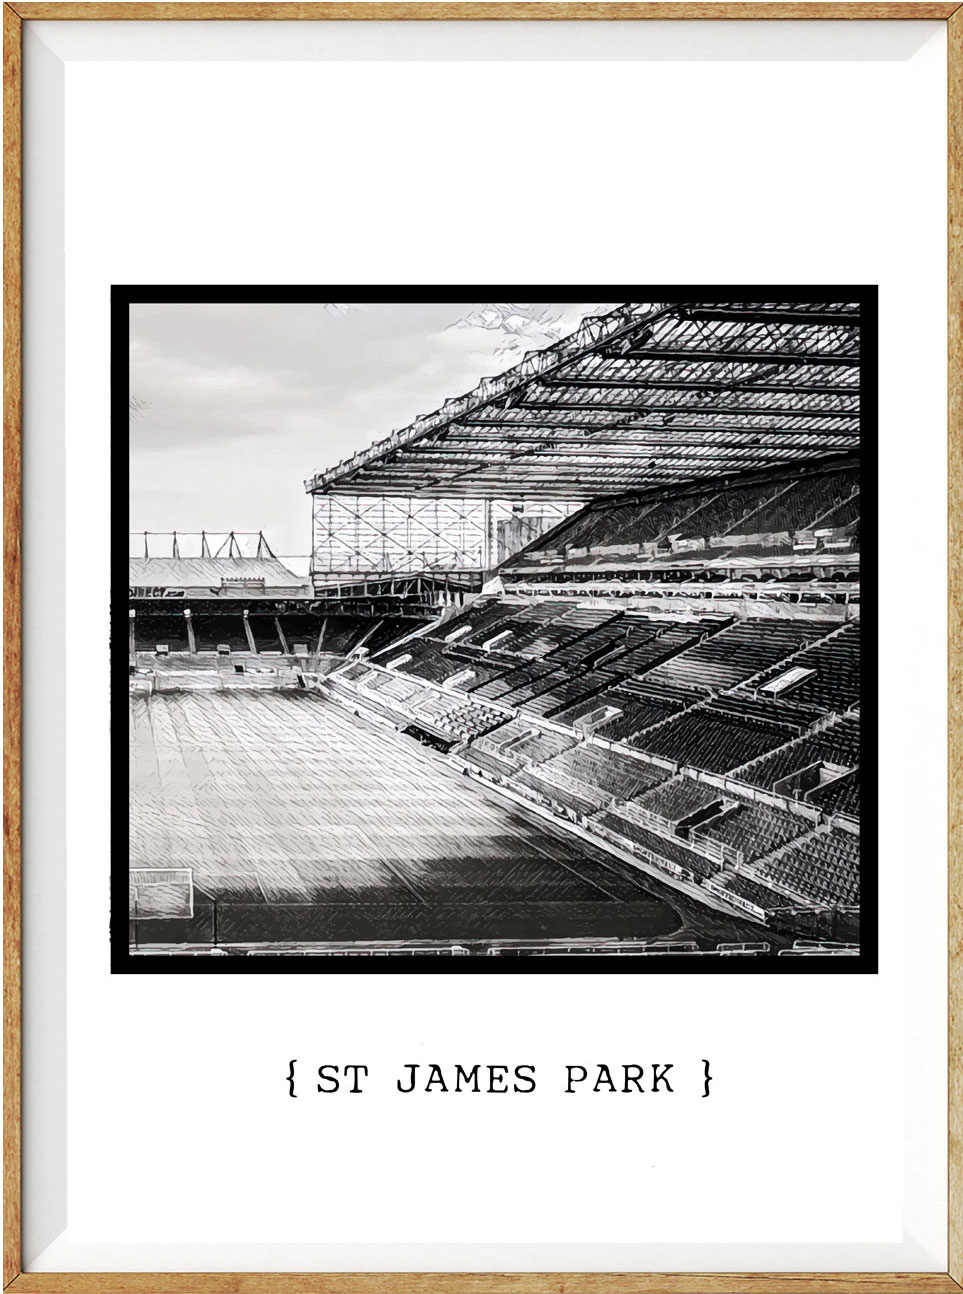 Newcastle St James Park